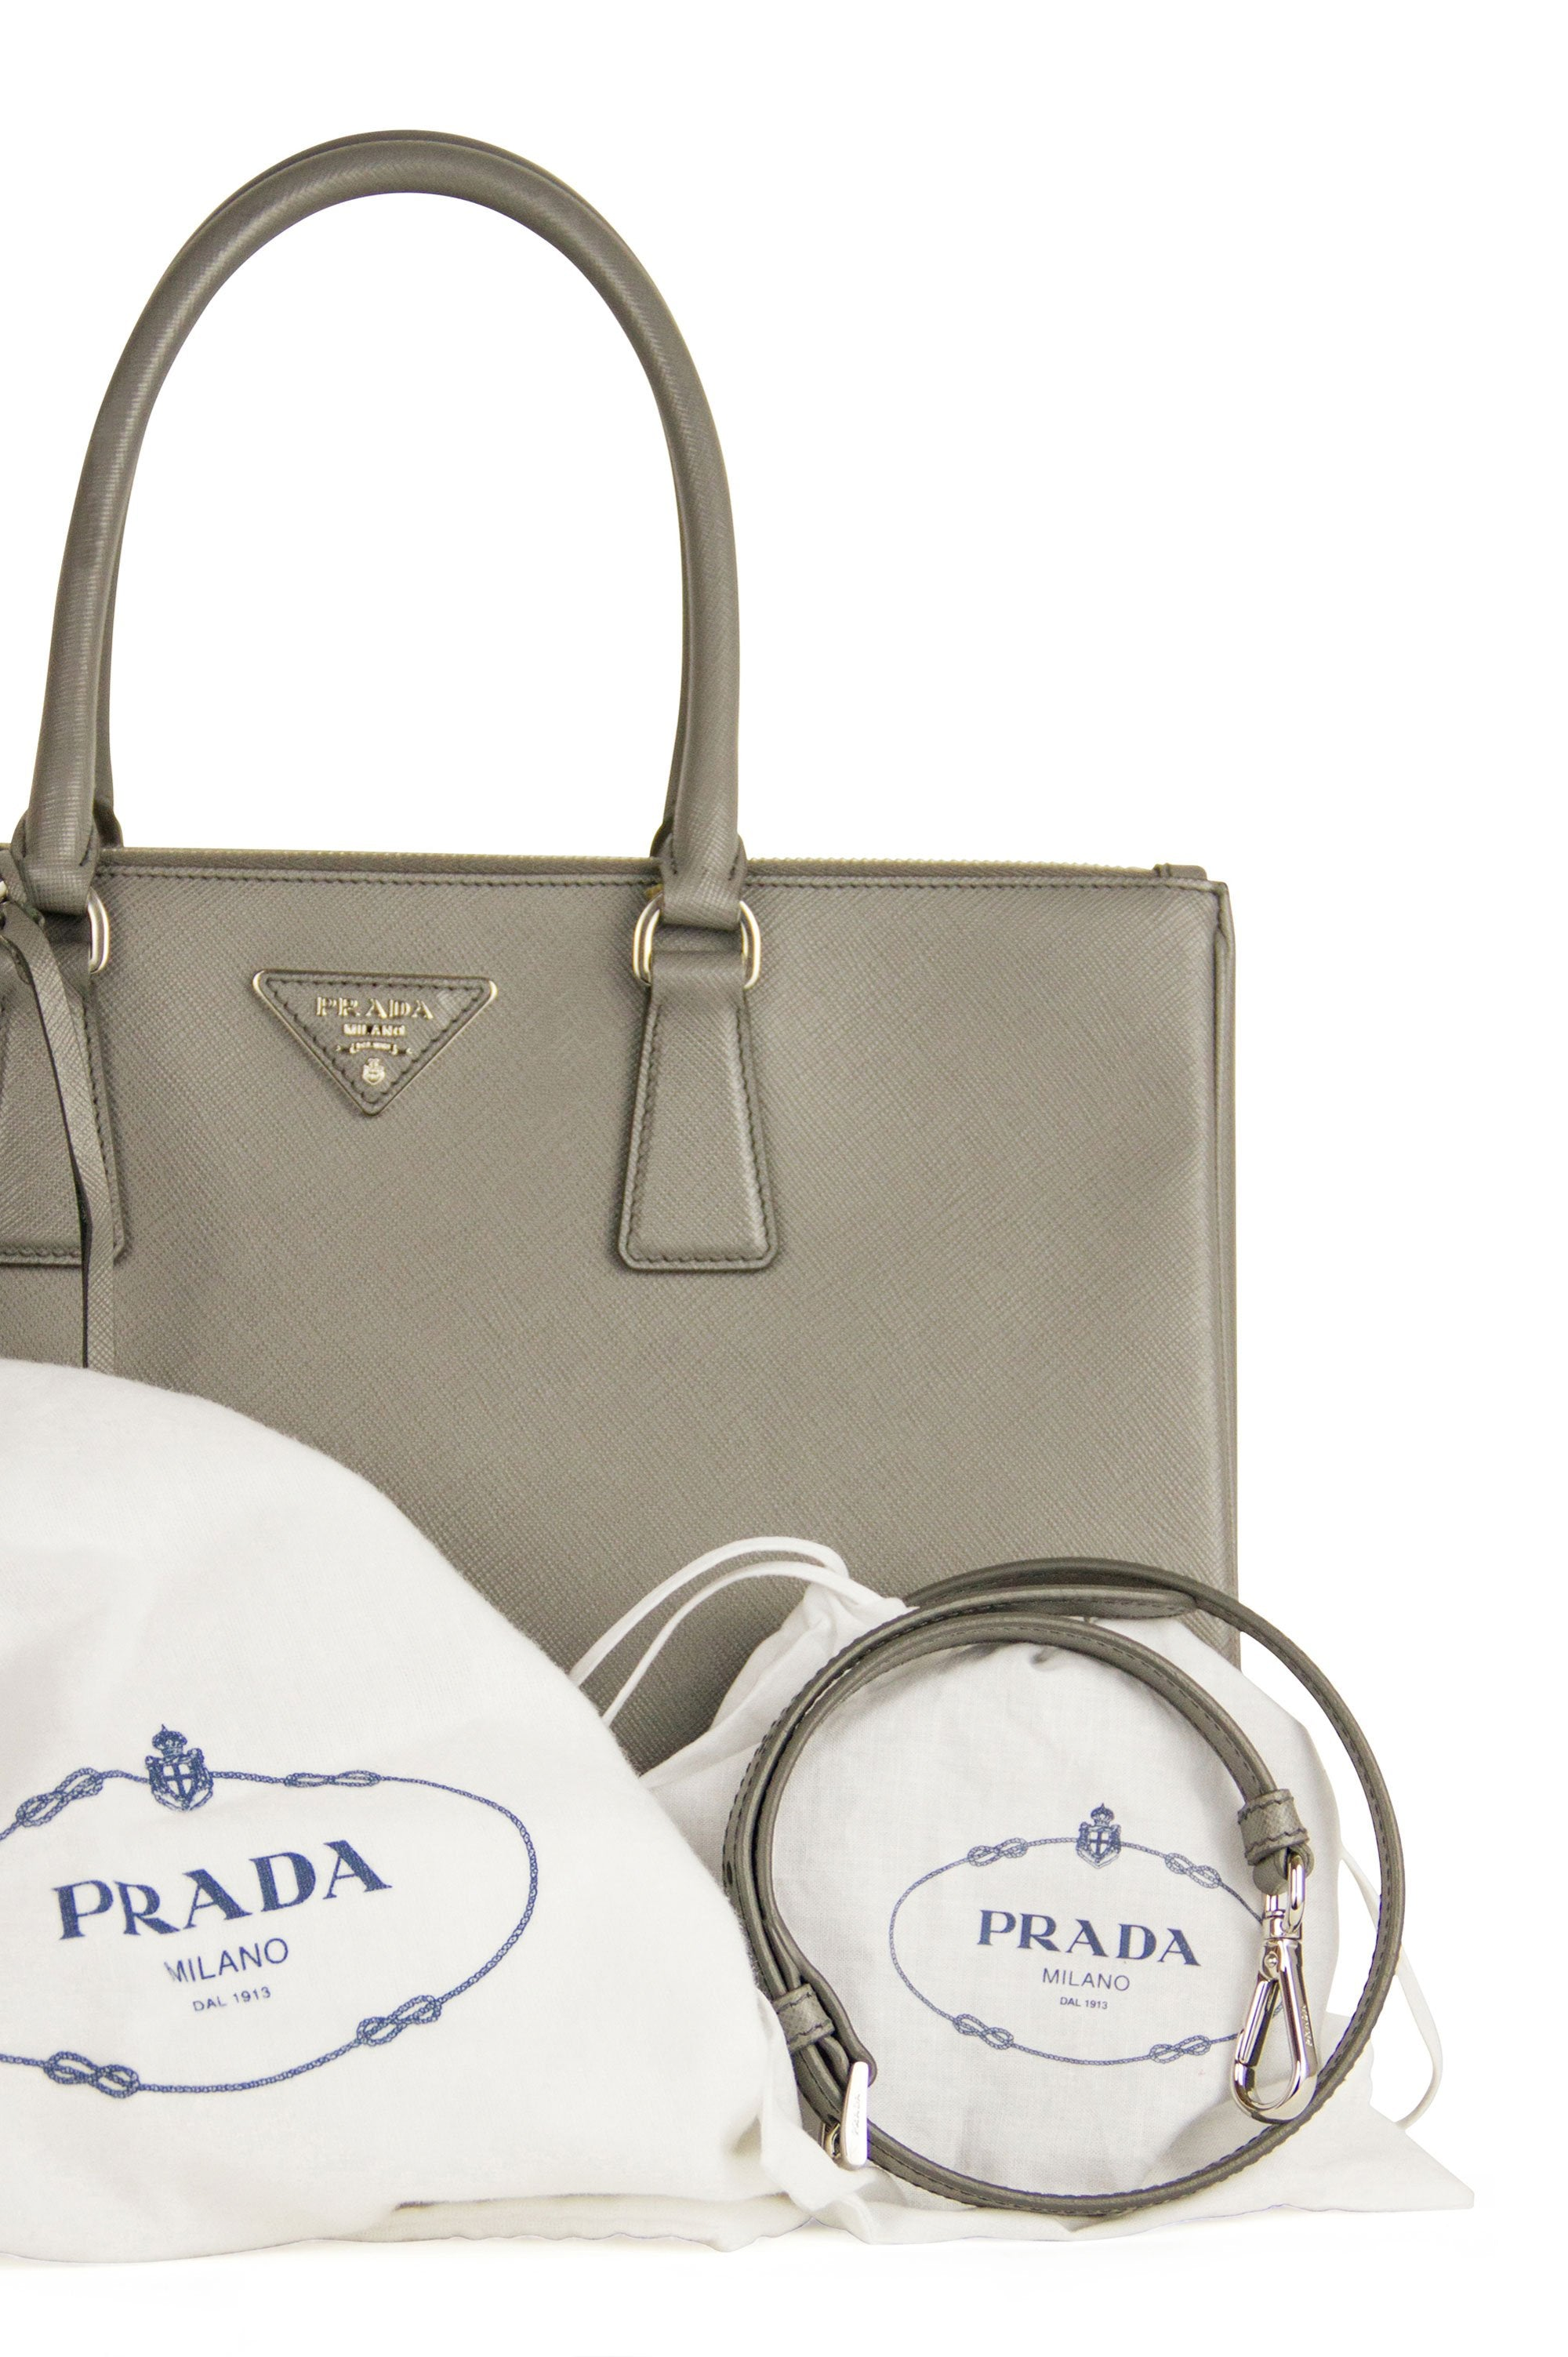 Prada Tote Galleria Saffiano Leather Full Set Grau